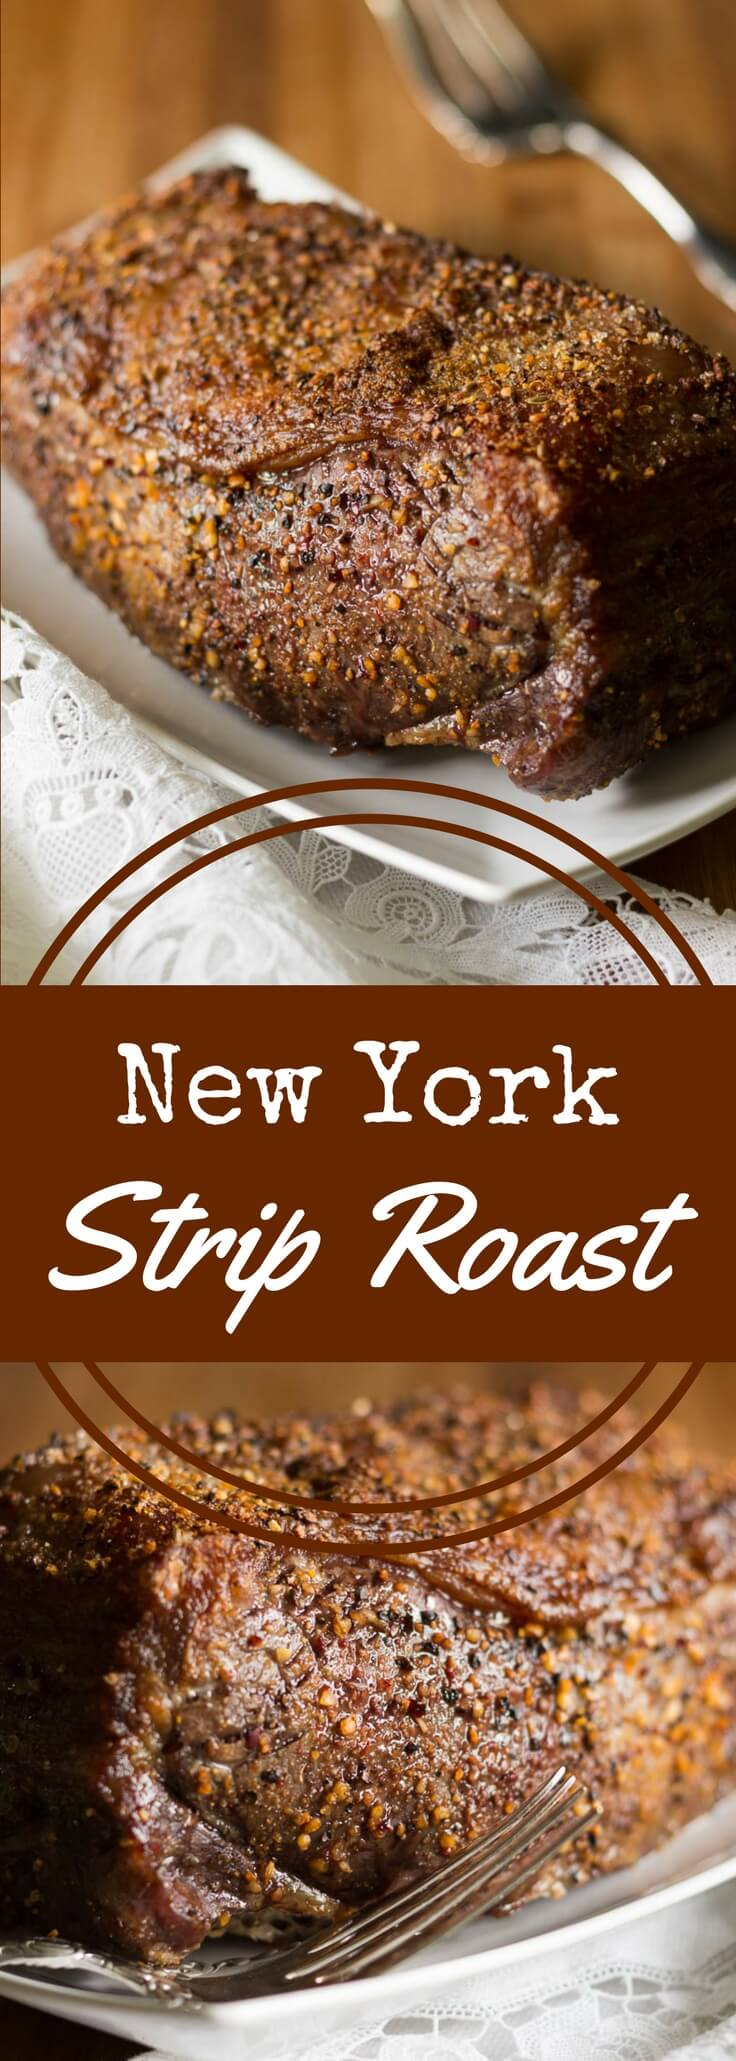 New York Strip Roast is so insanely delicious, it's amazing that it isn't already on your menu every week.